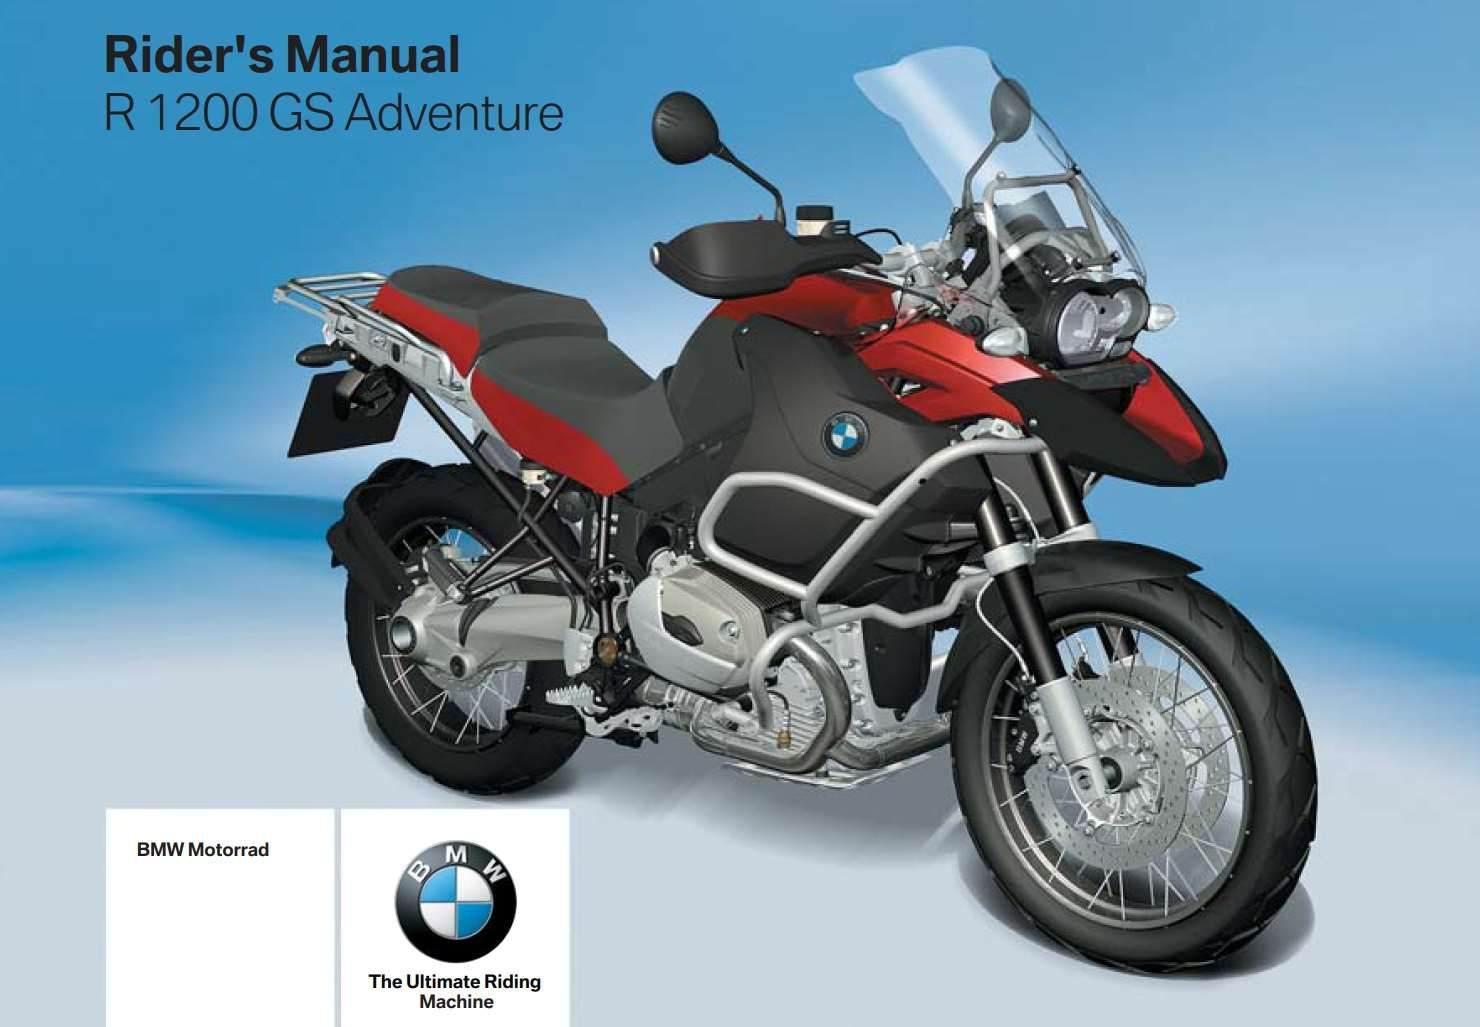 BMW R 1200 GS Adventure 2007 Owner's Manual has been